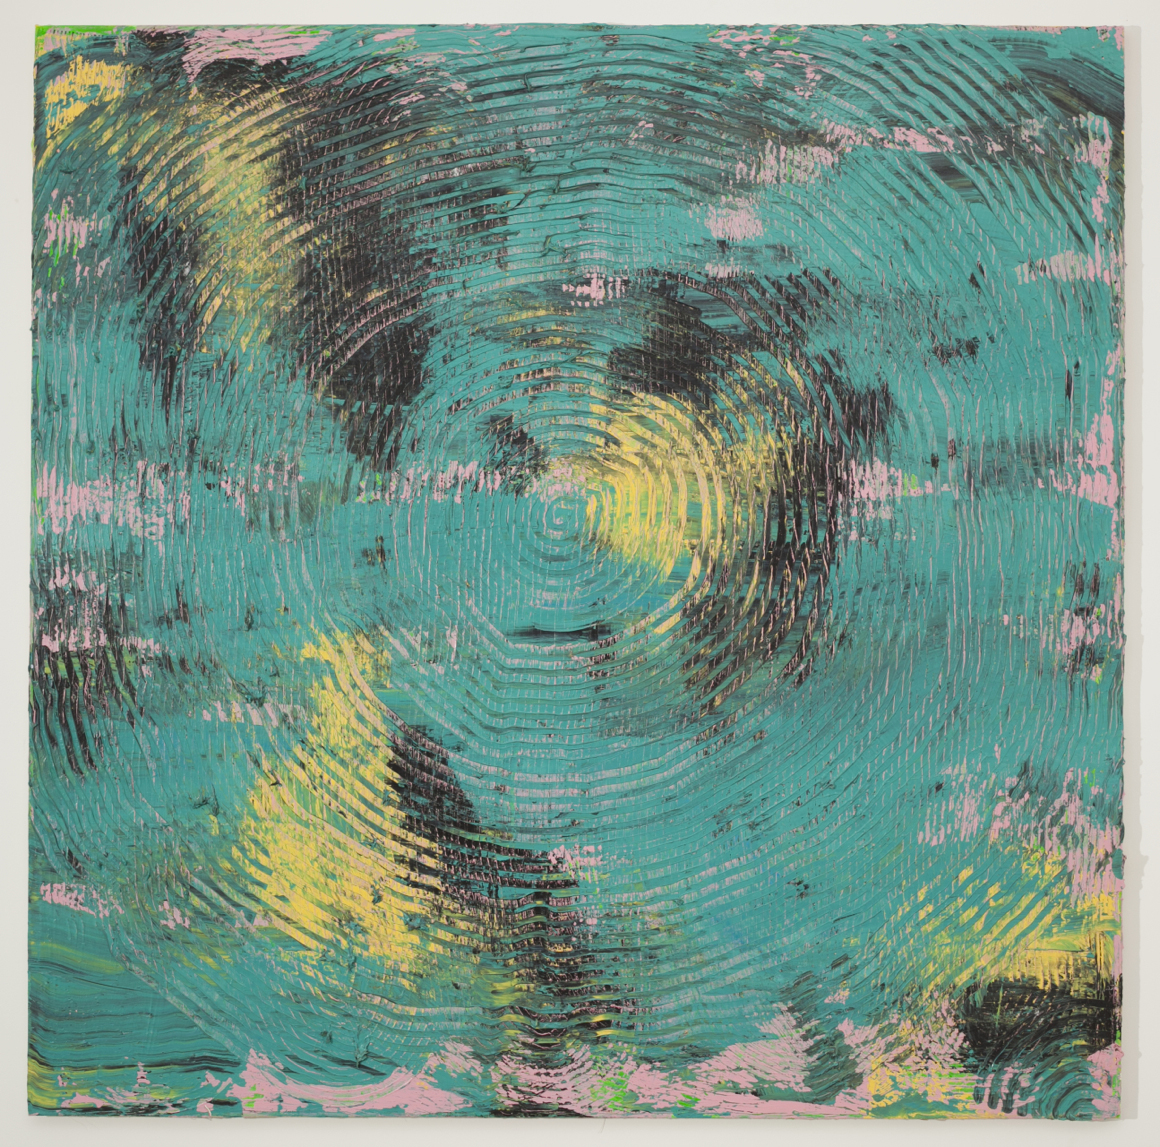 "<p><span class=""name"">Adam Bateman</span><br><em>Teal</em><span class='media'>acrylic and spray paint on canvas</span>72 x 72 in<br>2014<br></p>"